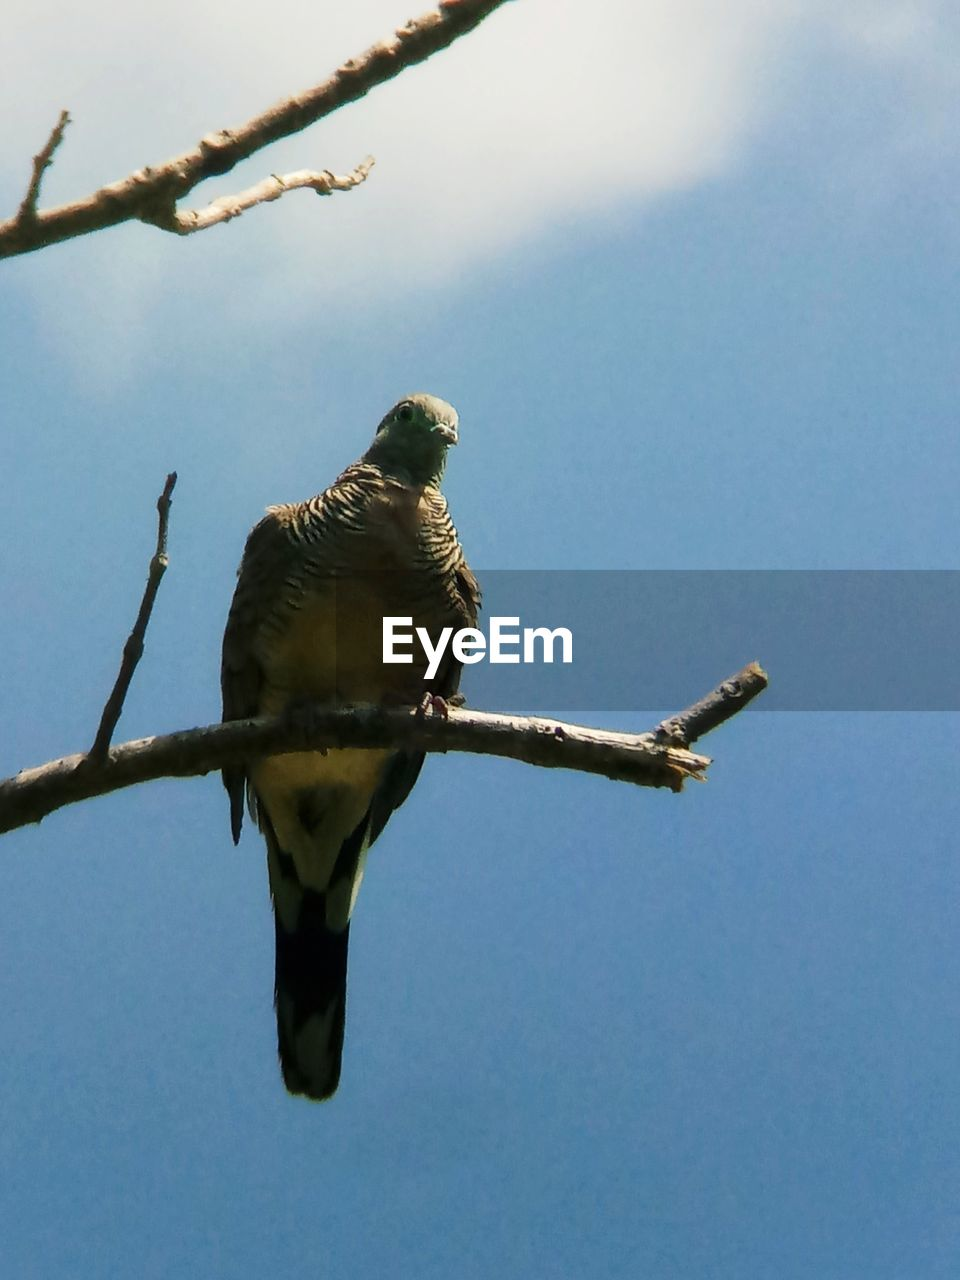 bird, vertebrate, animals in the wild, animal, animal themes, perching, animal wildlife, one animal, sky, low angle view, branch, nature, tree, no people, day, plant, clear sky, outdoors, twig, blue, eagle